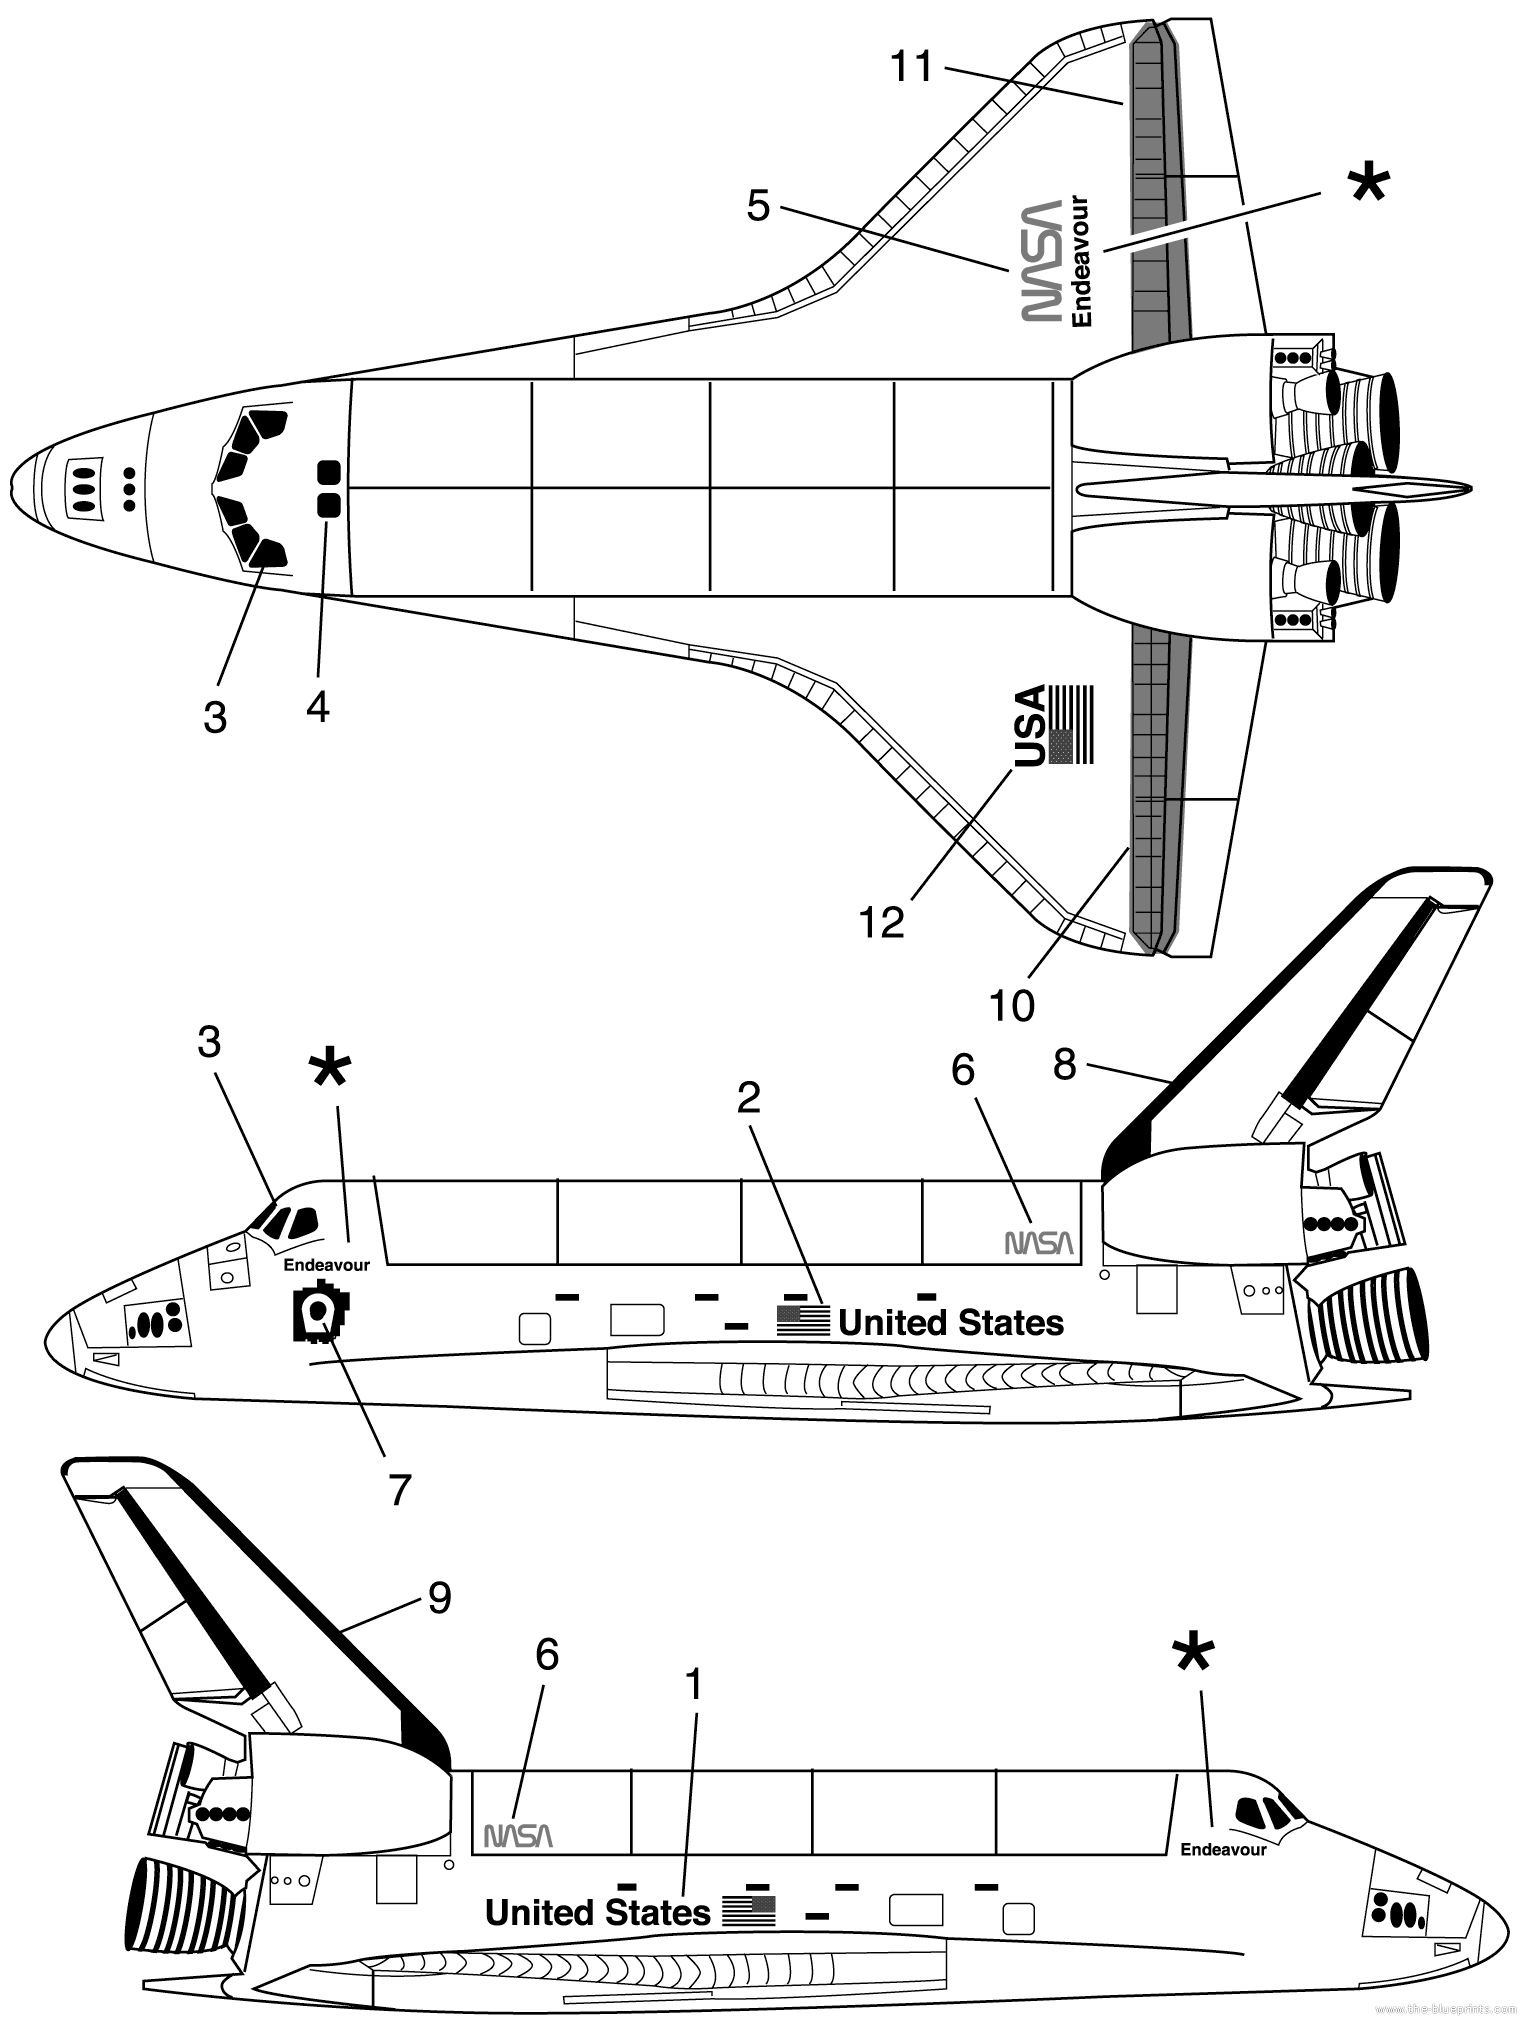 space shuttle controls drawings - photo #7